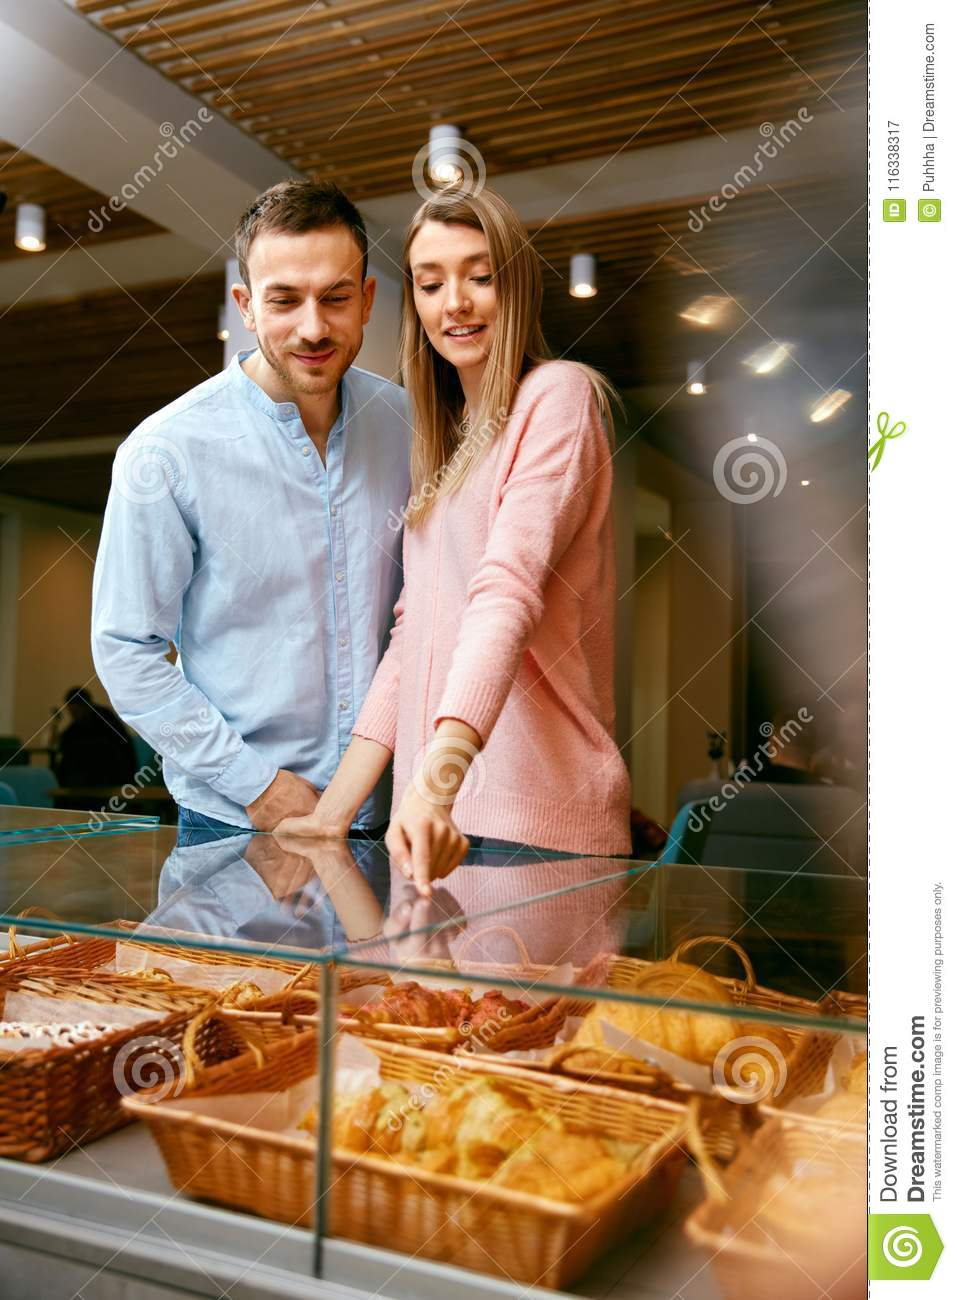 Bakery. Man And Woman In Pastry Shop